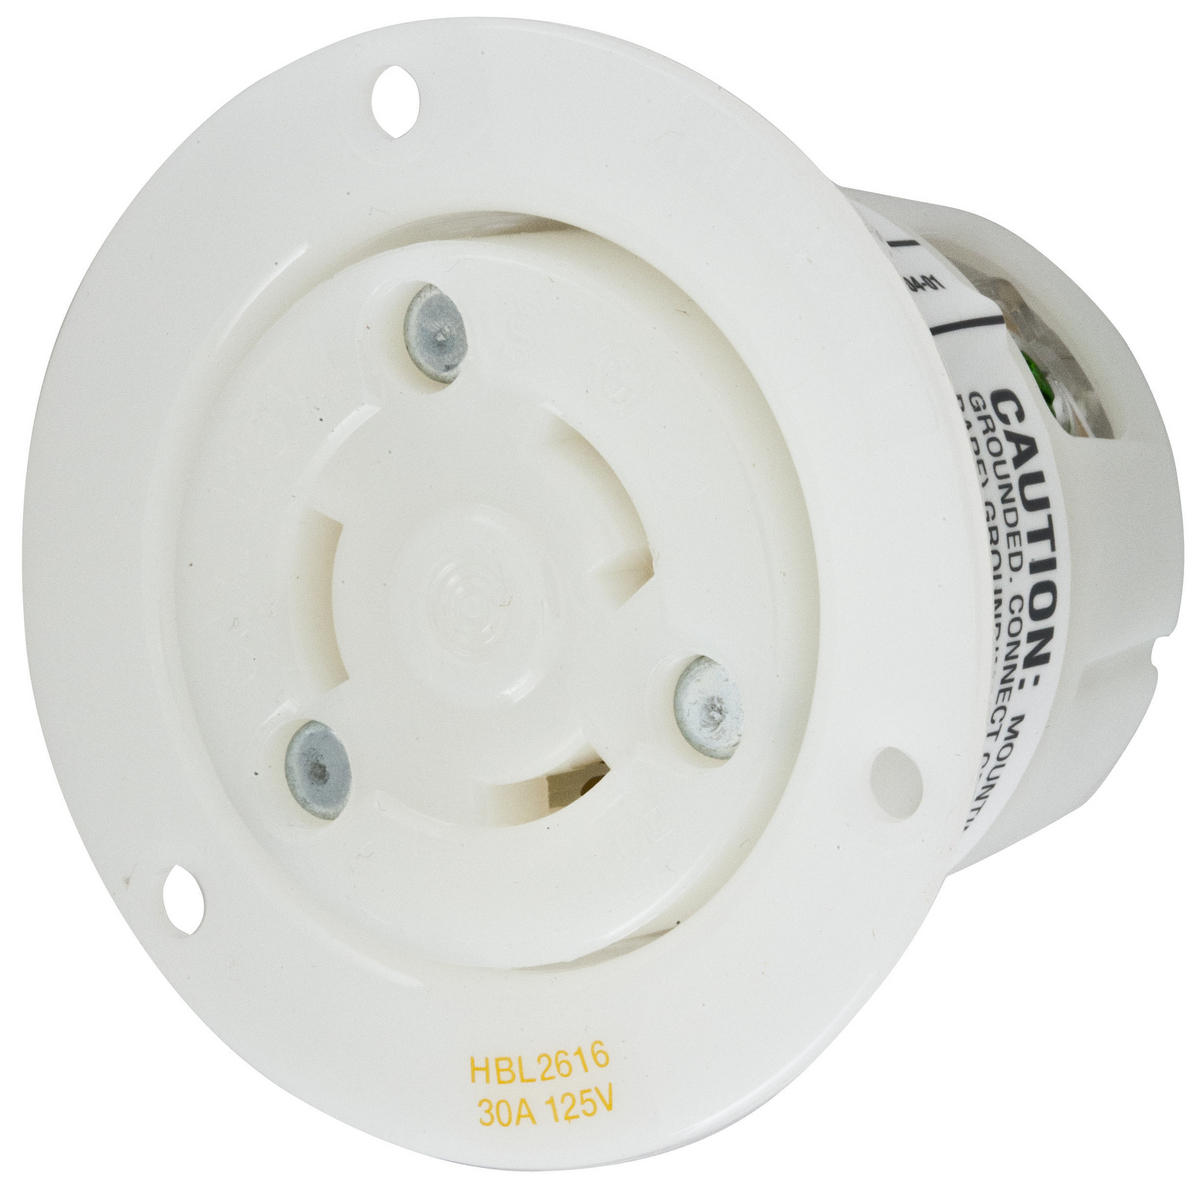 Hubbell HBL2616 30 Amp 125 Volt 2-Pole 3-Wire NEMA L5-30R White Locking Flanged Receptacle